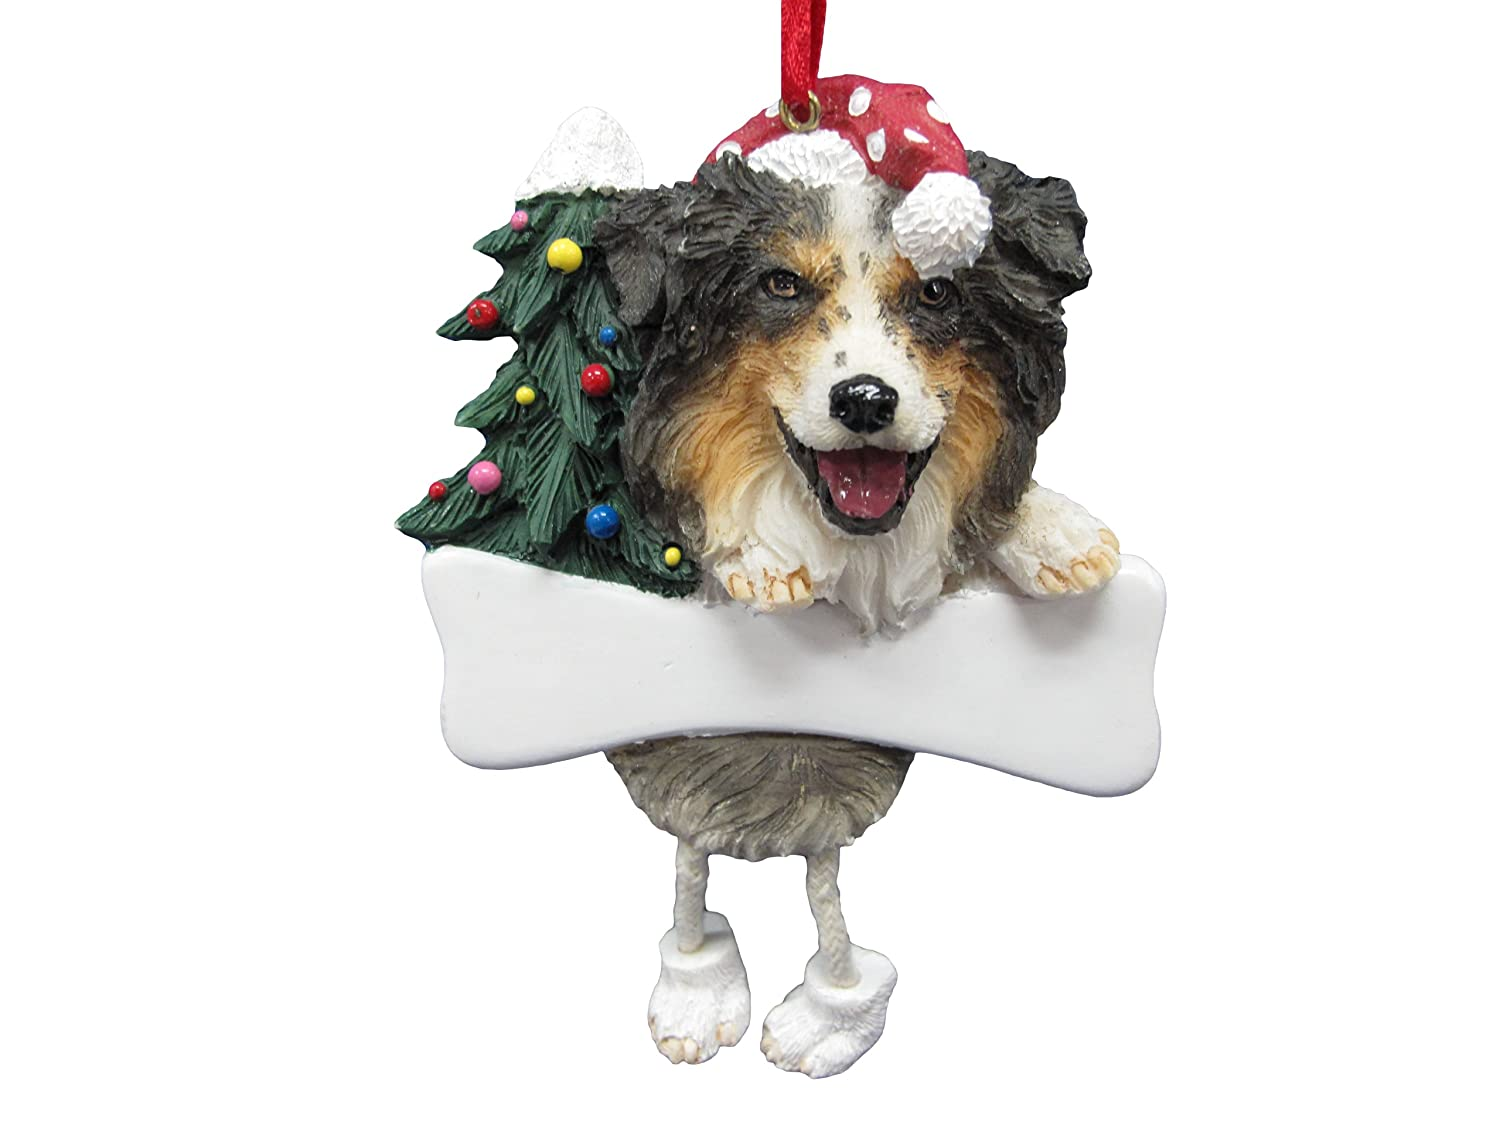 Australian Shepherd Christmas Ornament.Australian Shepherd Ornament With Unique Dangling Legs Hand Painted And Easily Personalized Christmas Ornament